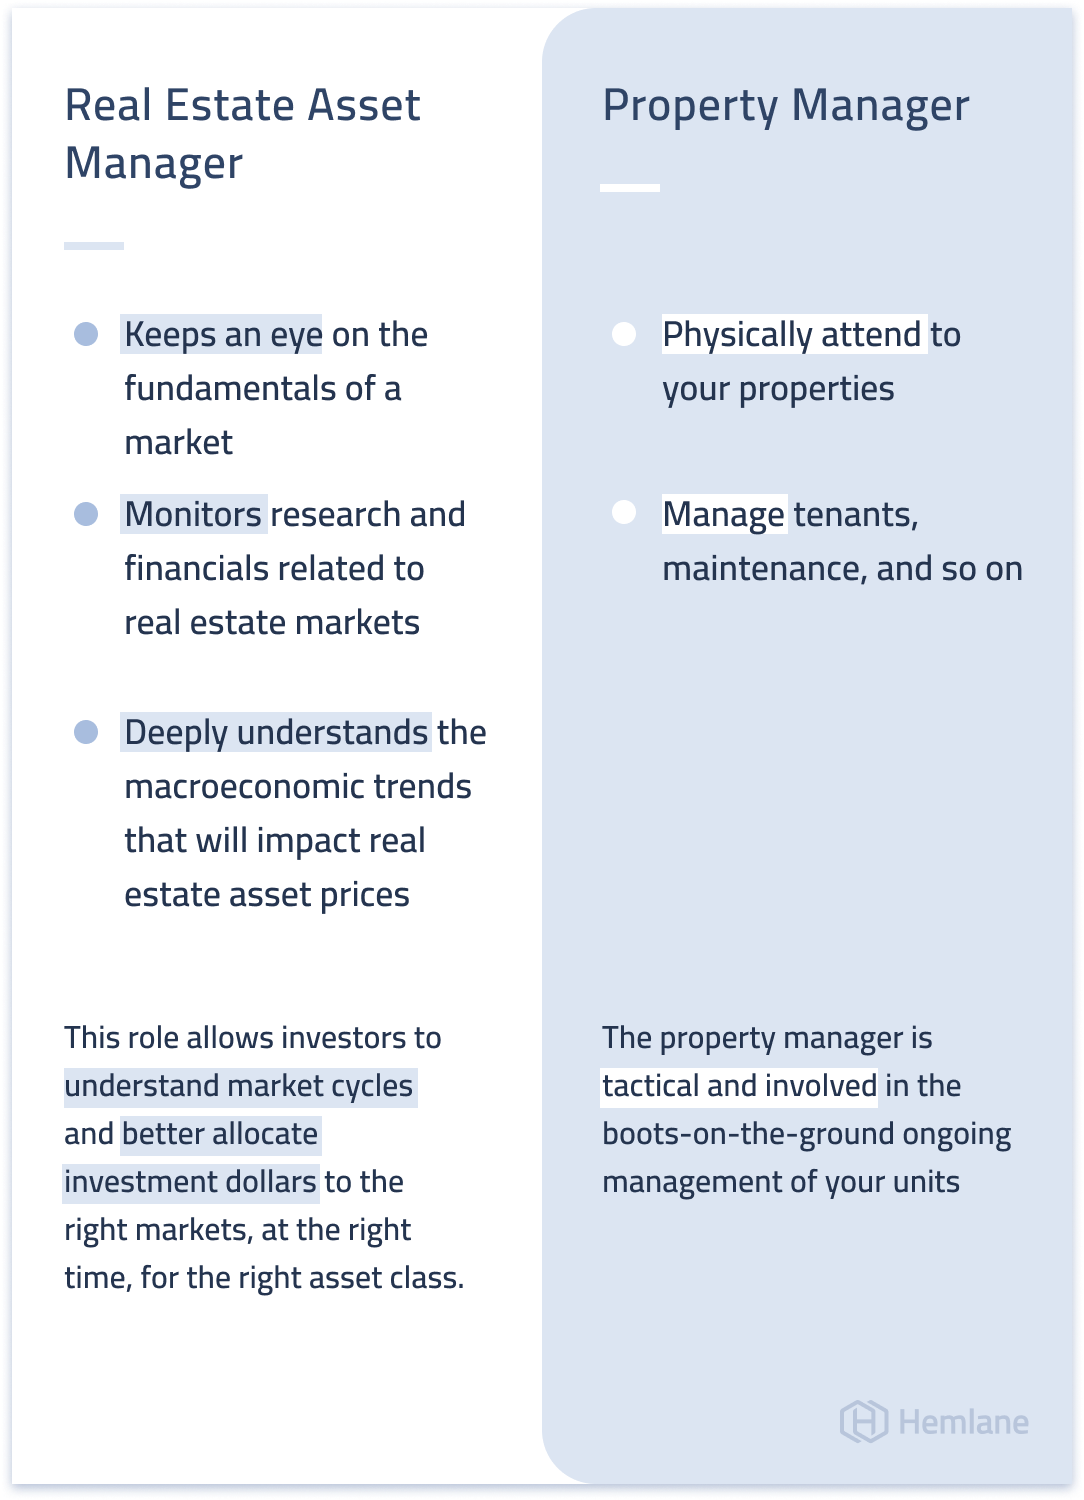 What is a real estate asset manager versus a property manager?